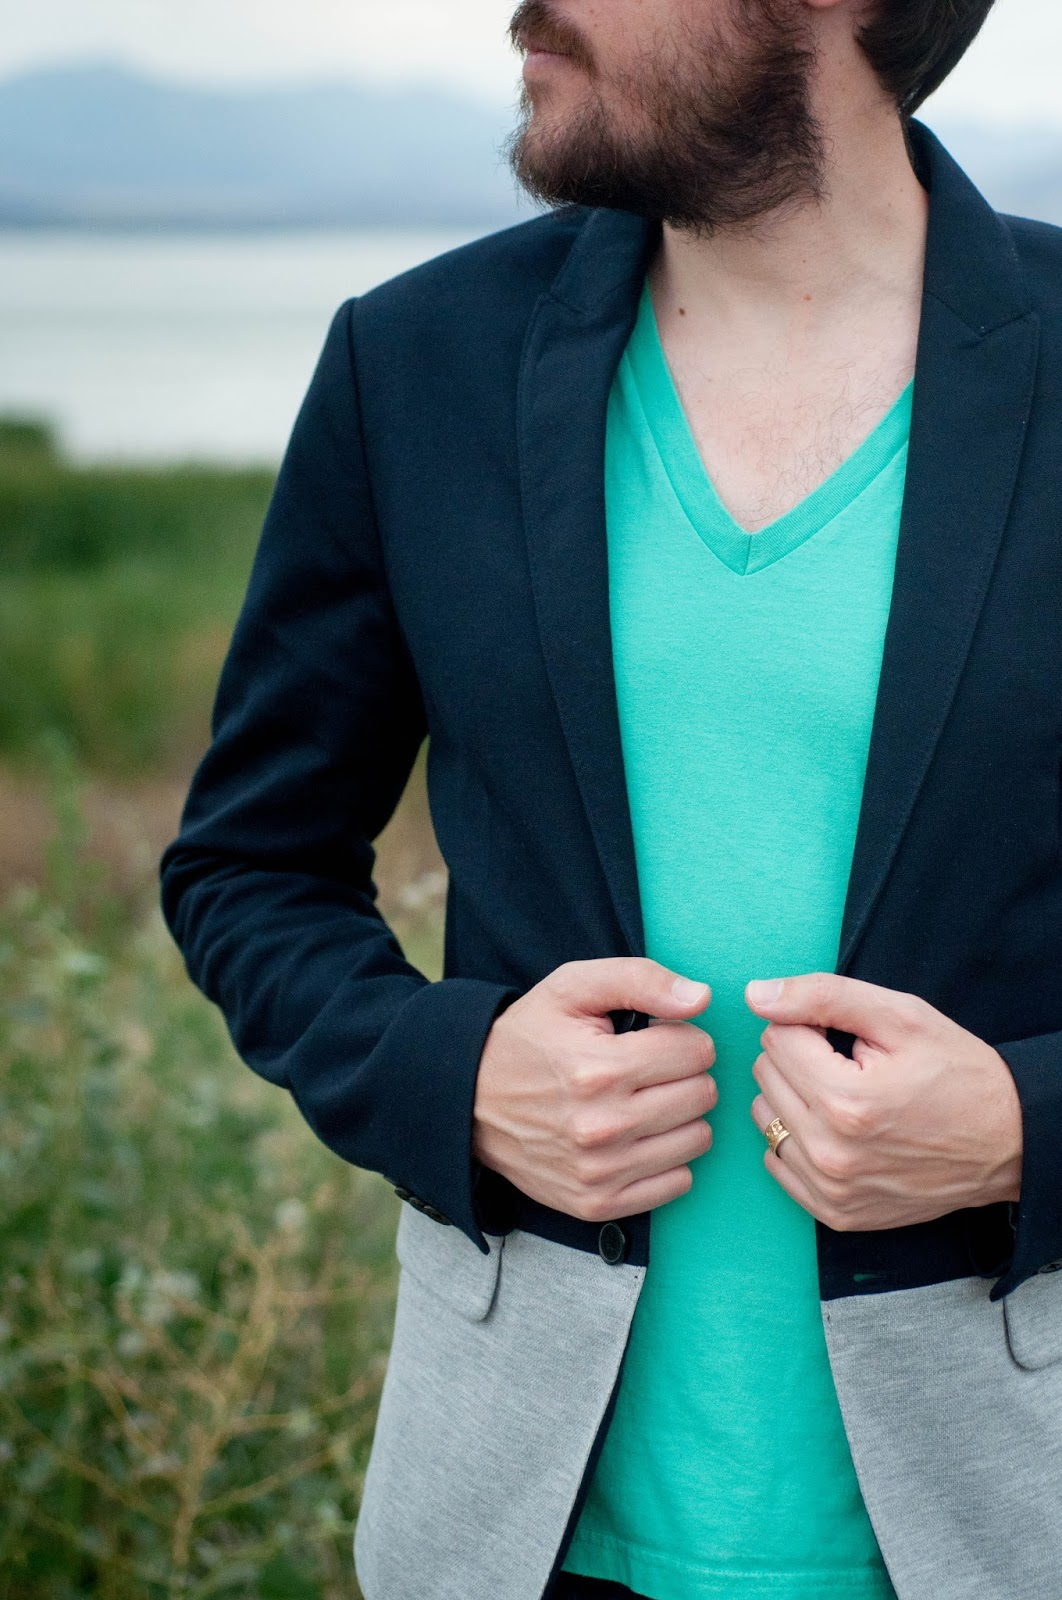 mens ootd, mens fashion blog, mens style blog, american apparel v neck, v neck shirt, zara blazer